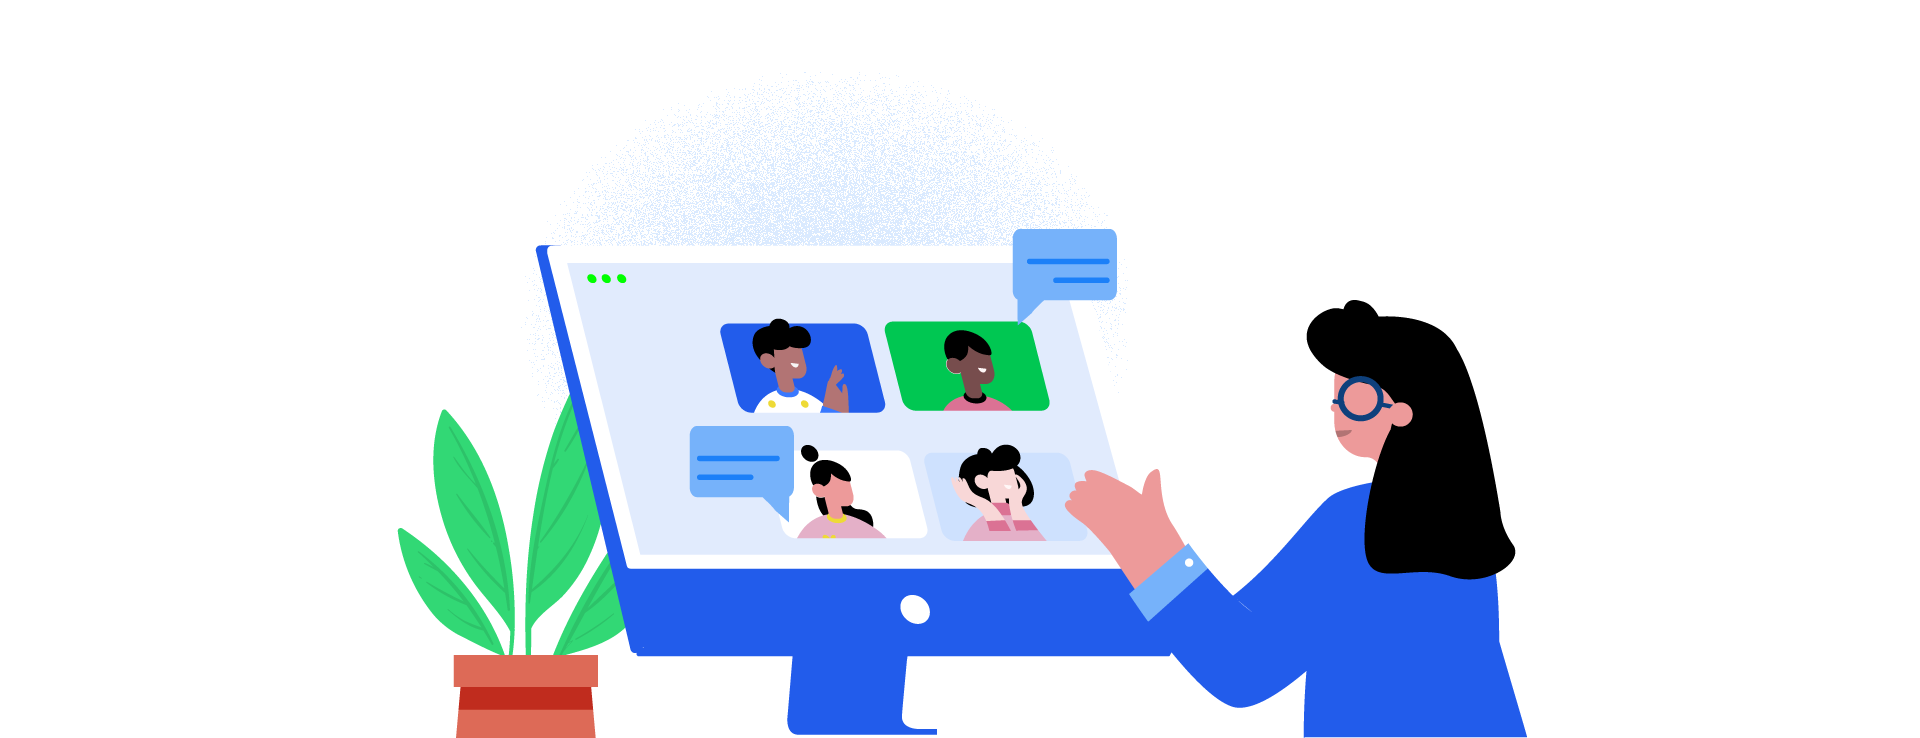 Keep in touch with your colleagues while working from home. By keeping them in the loop of project progress and possible deviations, you can get them to have your back when in need. Share your work plan with them so that everyone is on the same page. You can let go of unnecessary worries when you have people to count on.